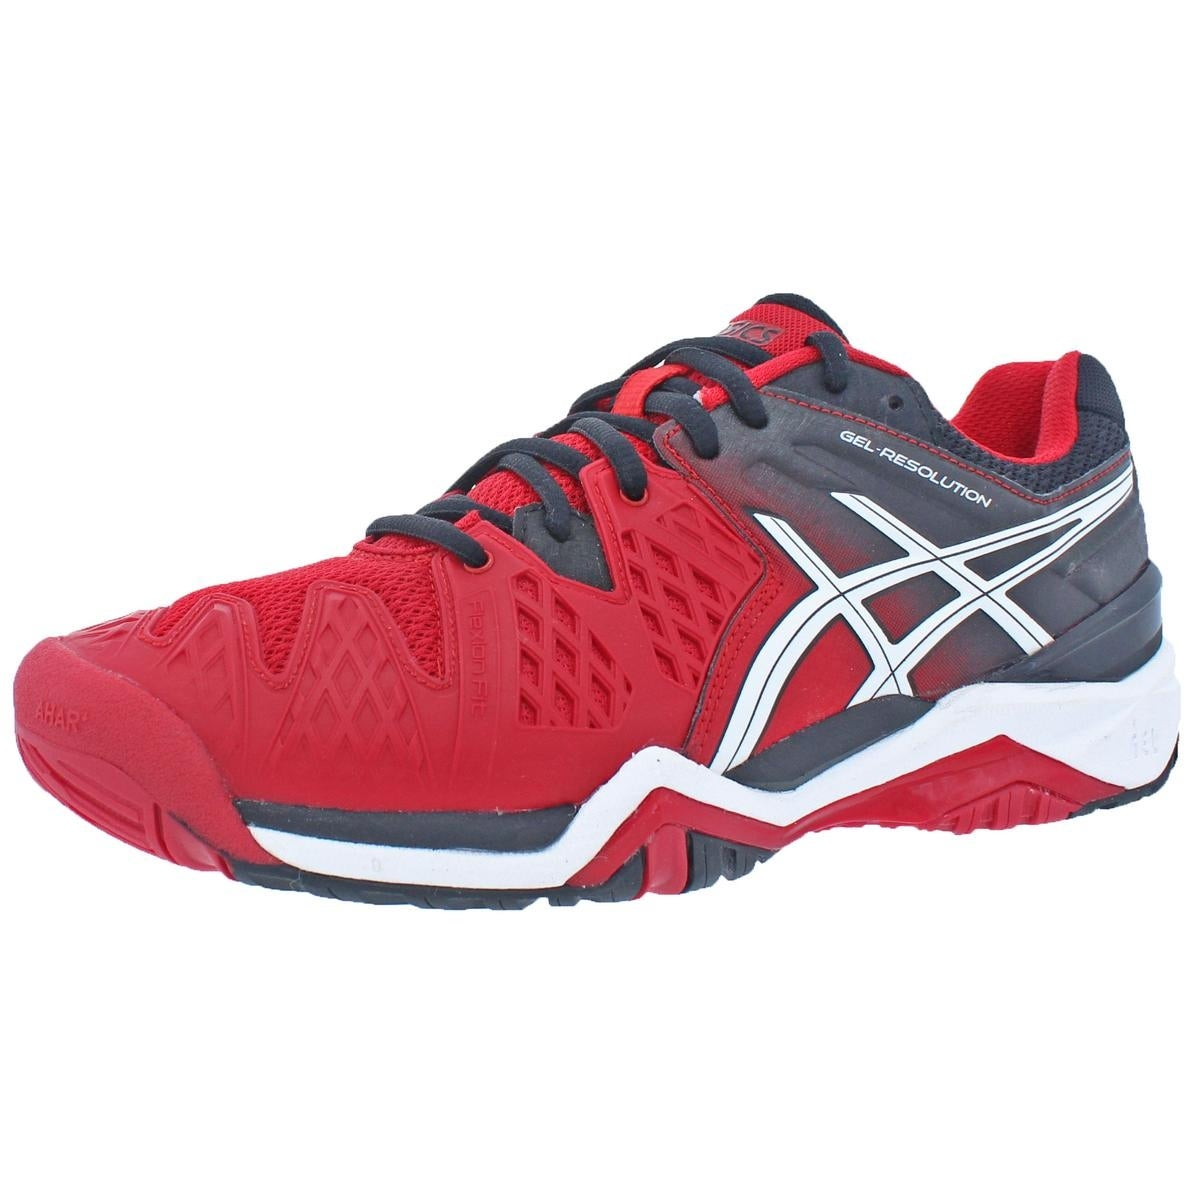 10665e1a54 Shop Asics Mens Gel-Resolution 6 Tennis Shoes Non Marking Flexion Fit - 6  medium (d) - Free Shipping Today - Overstock - 22358483